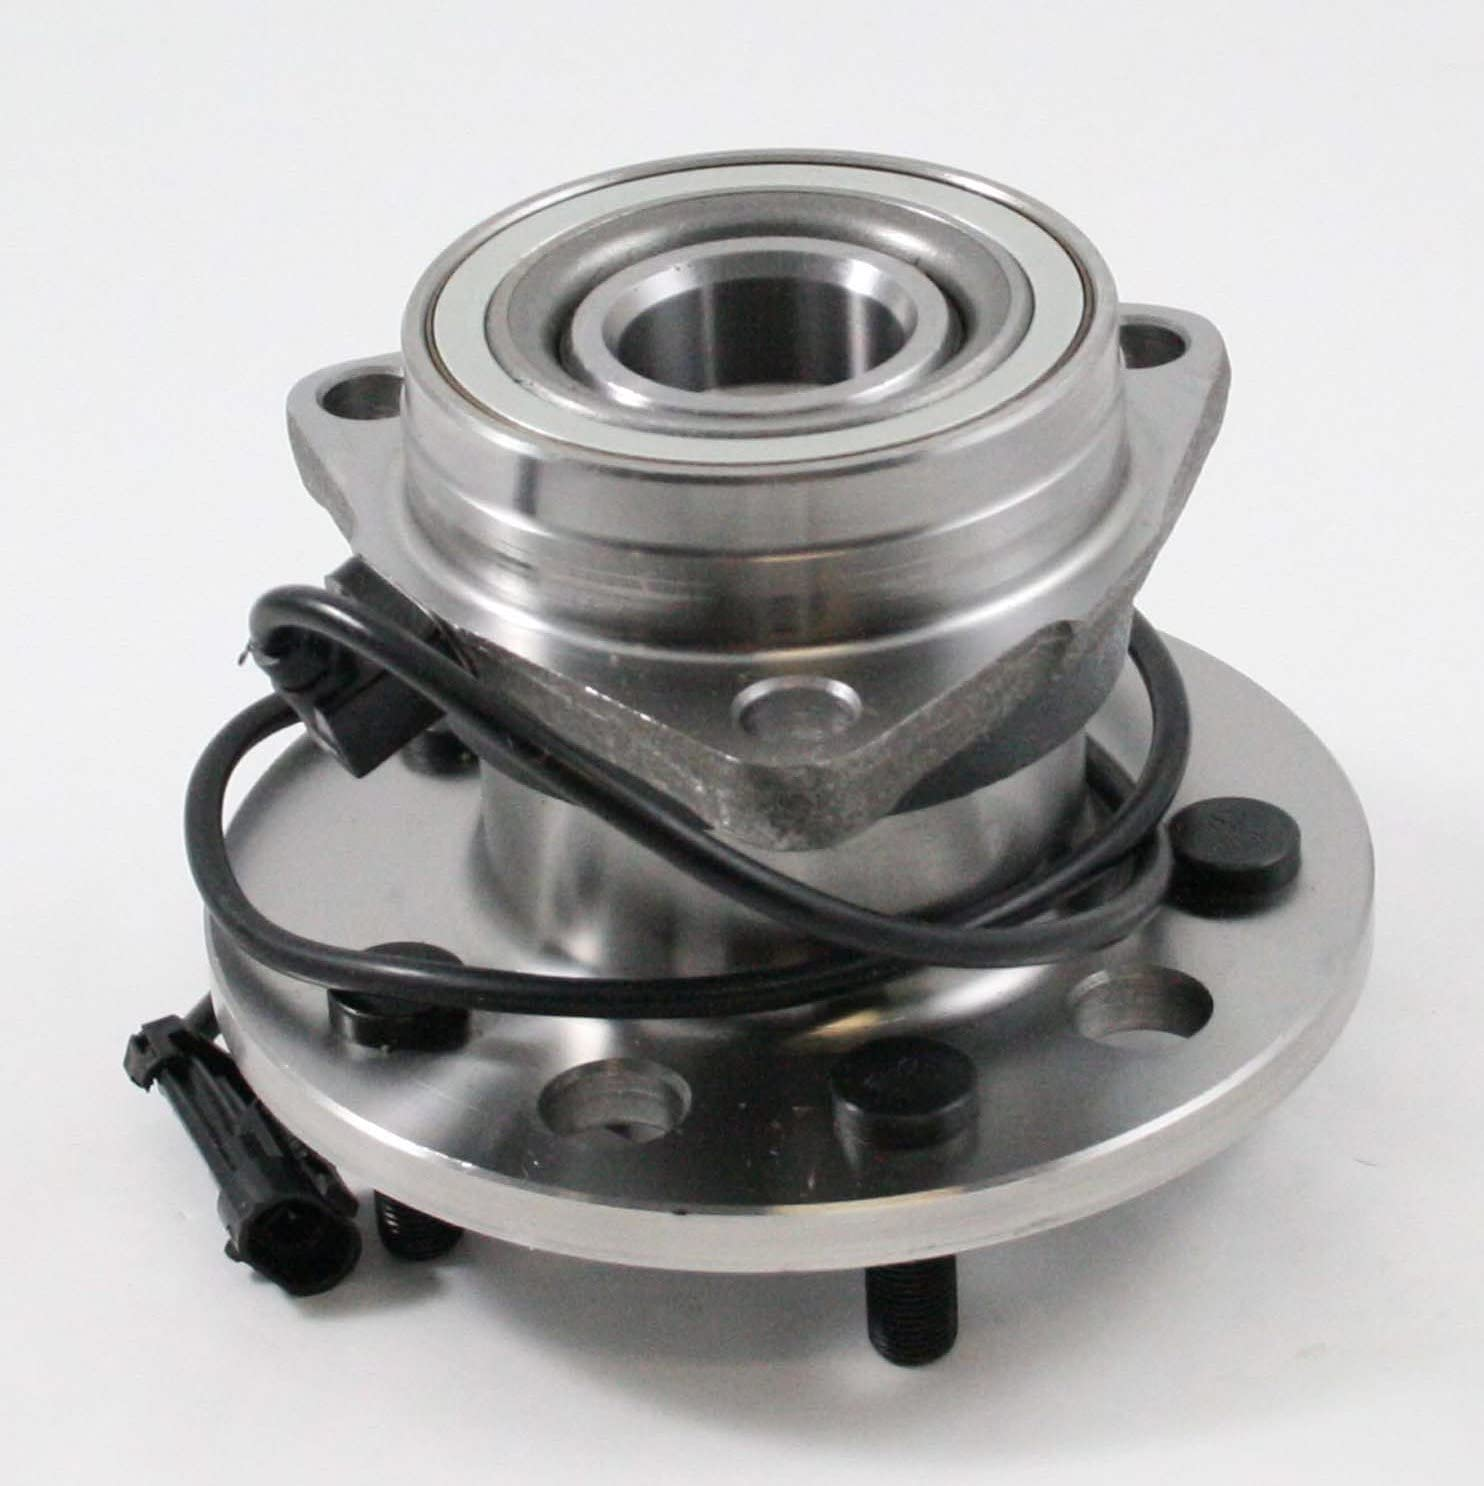 DuraGo 29515005 Front Hub Assembly